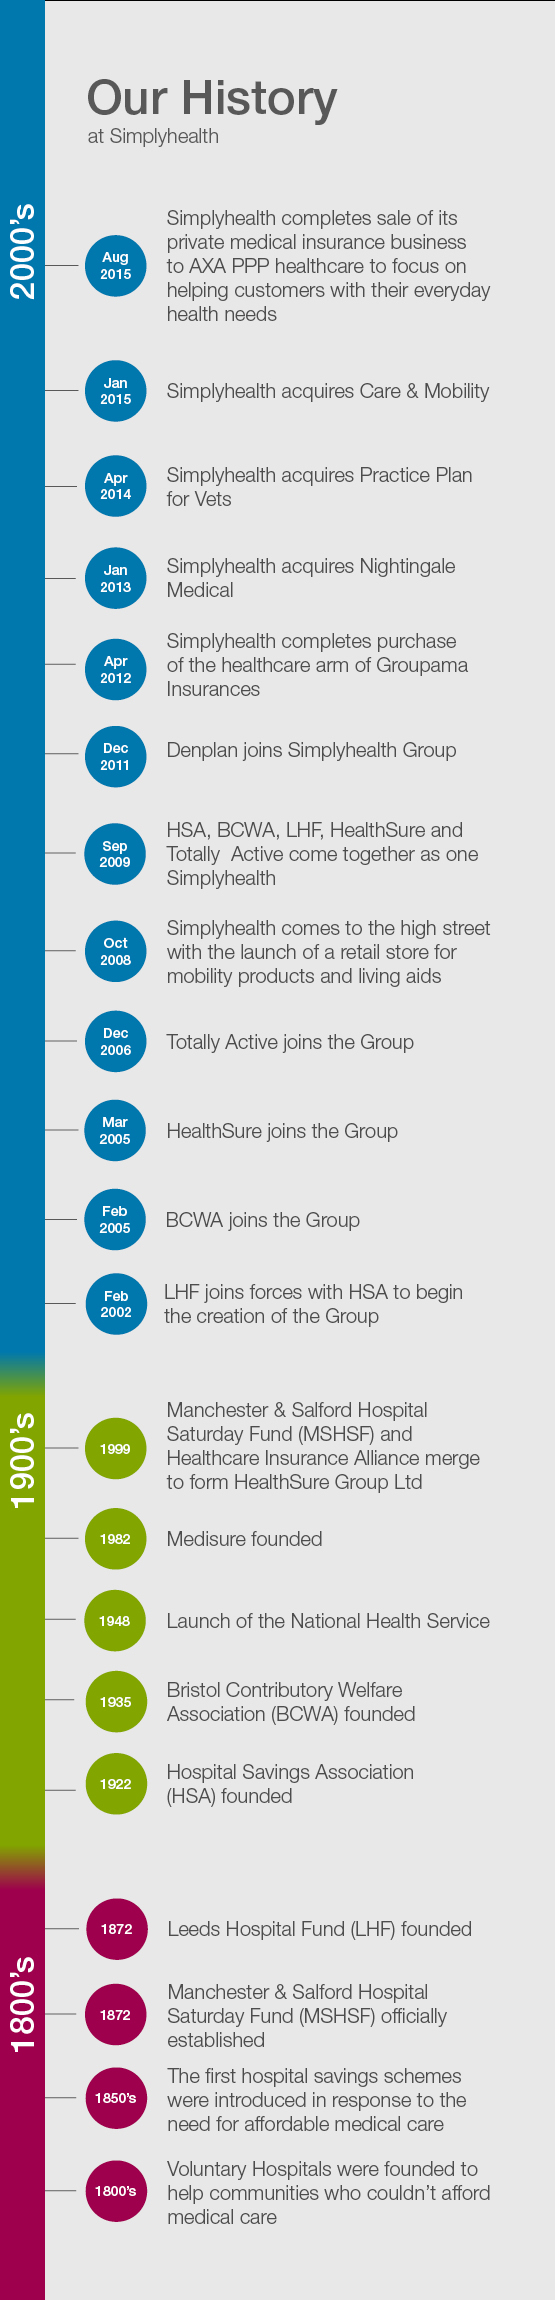 Simplyhealth - our history